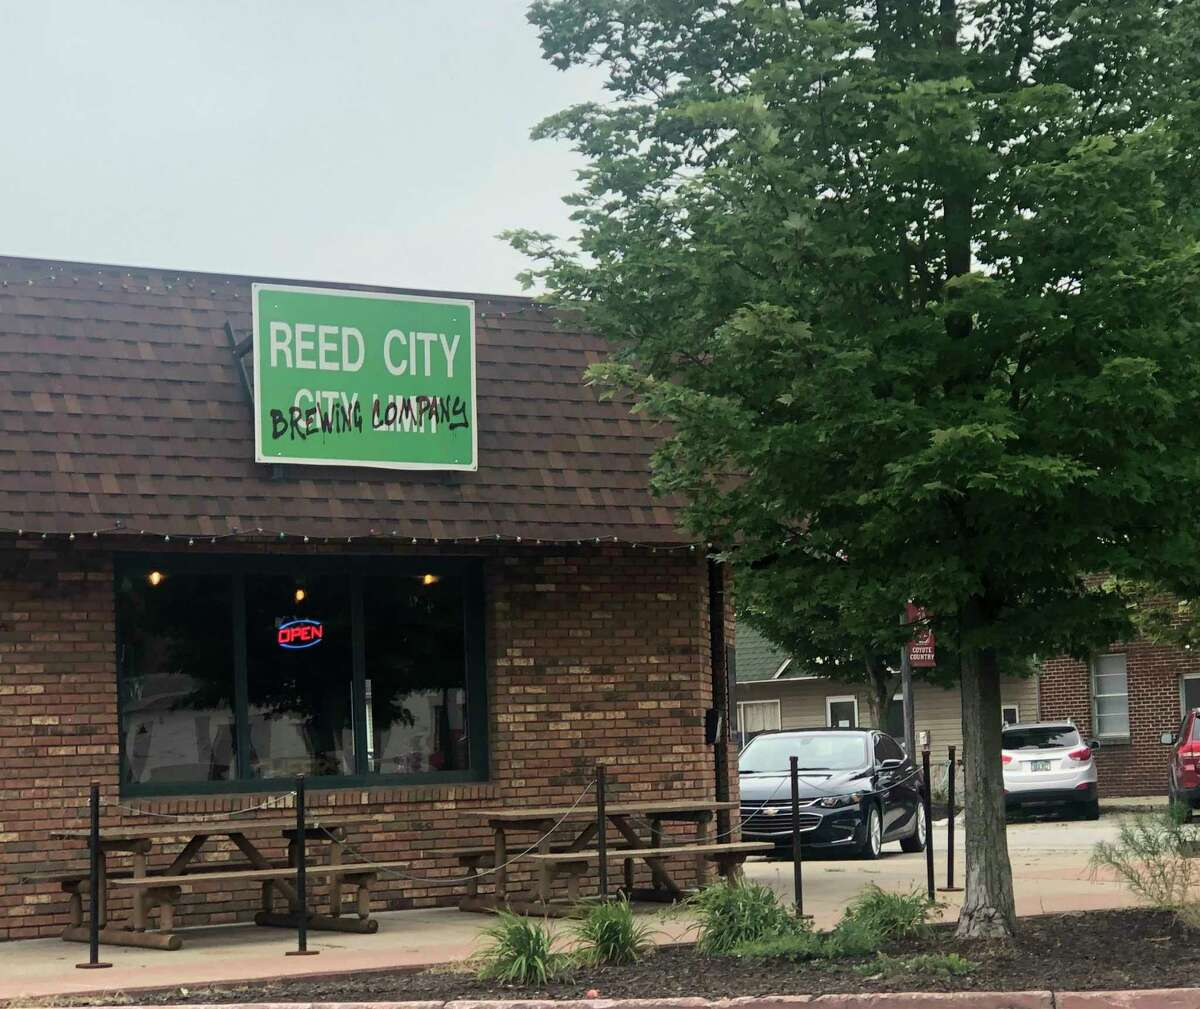 Located on Upton Ave. in downtown Reed City, Reed City Brewing Company is a favorite spot among locals. (Pioneer photo/Joe Judd)